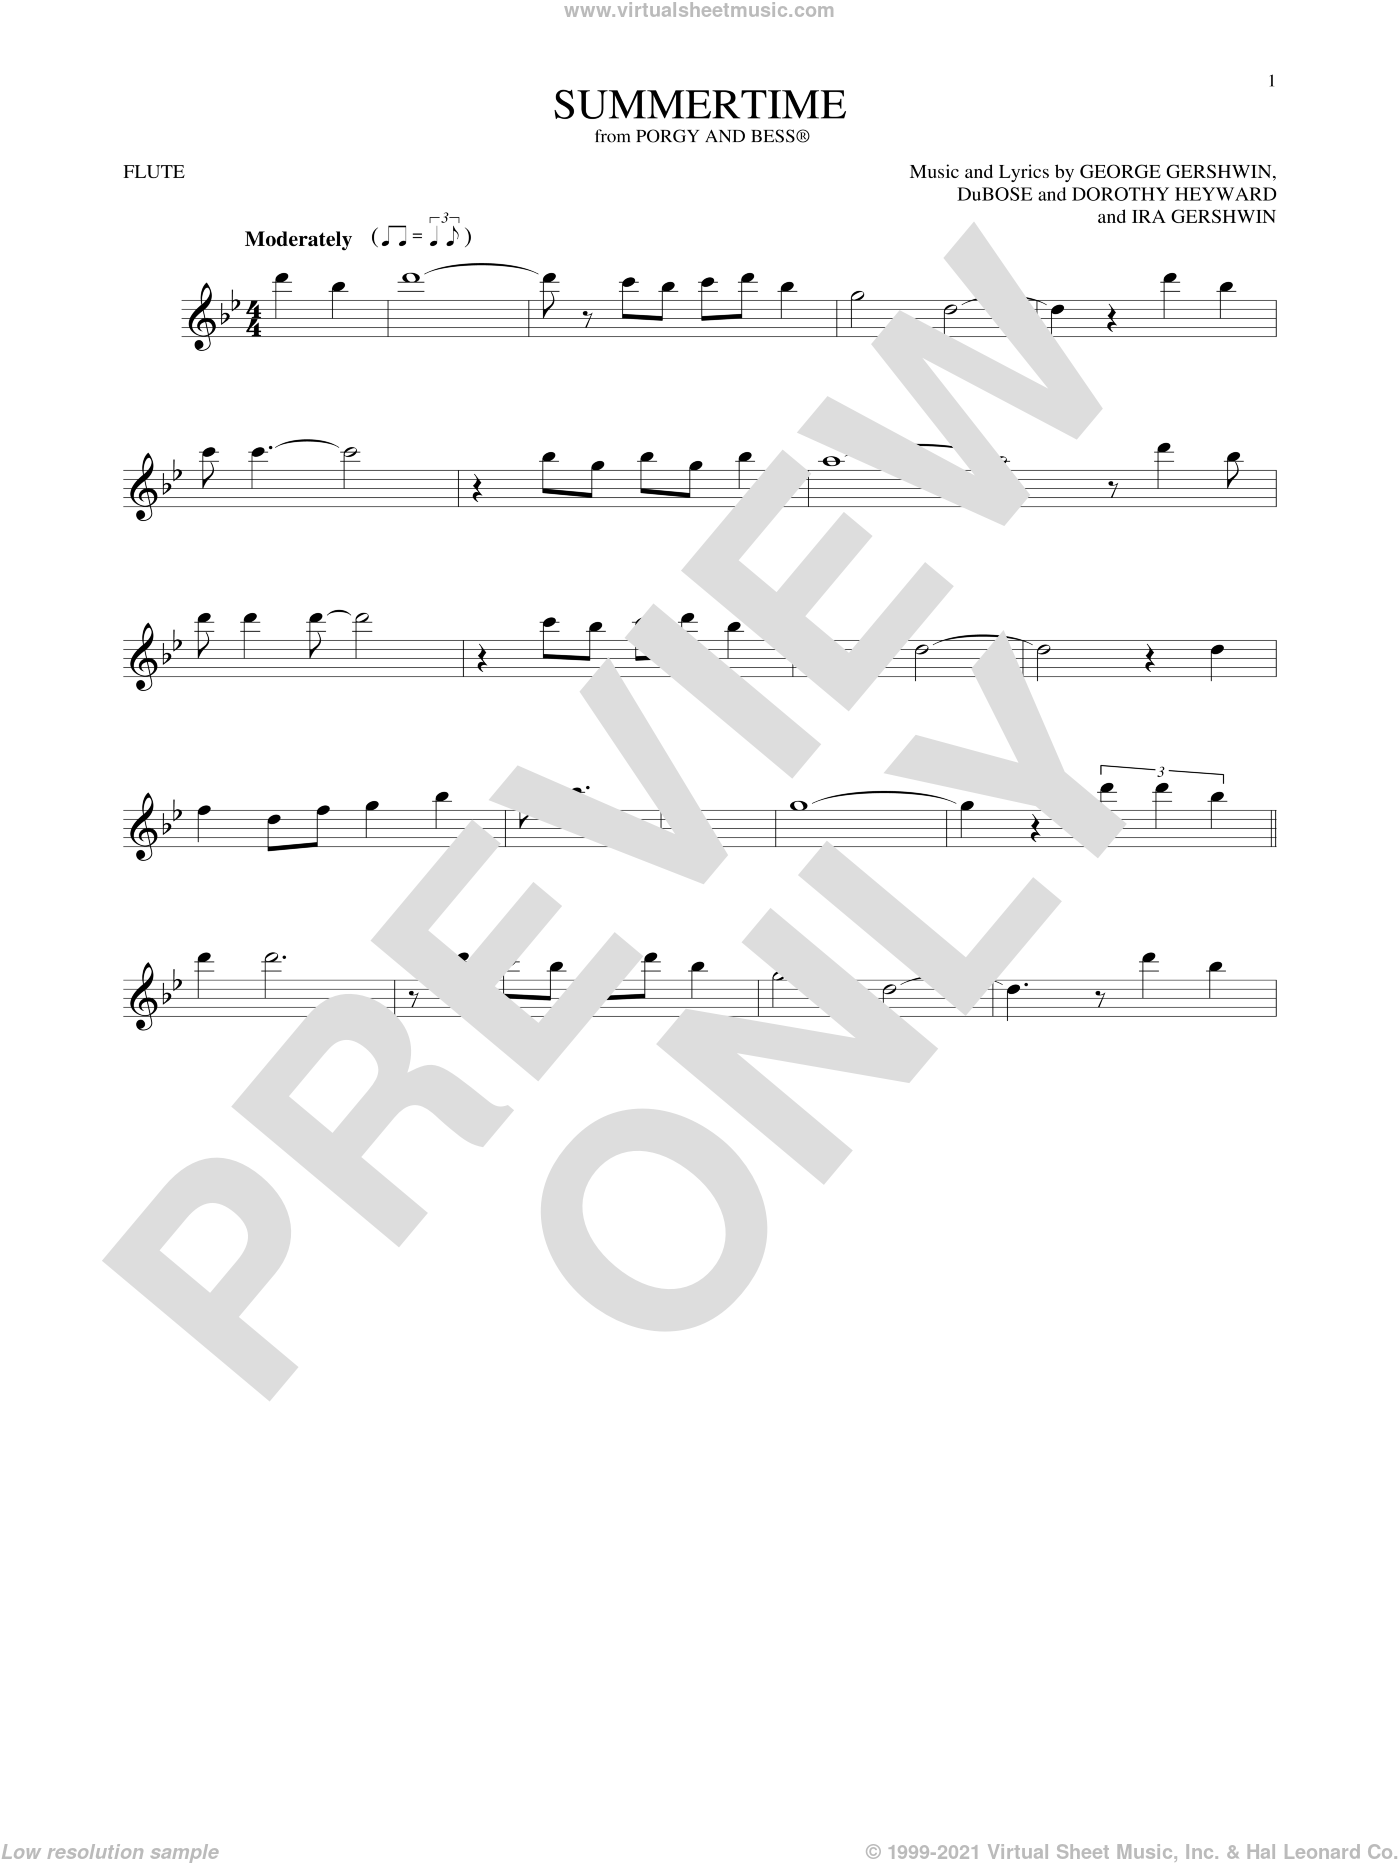 Summertime sheet music for flute solo by George Gershwin, Dorothy Heyward, DuBose Heyward and Ira Gershwin, intermediate skill level